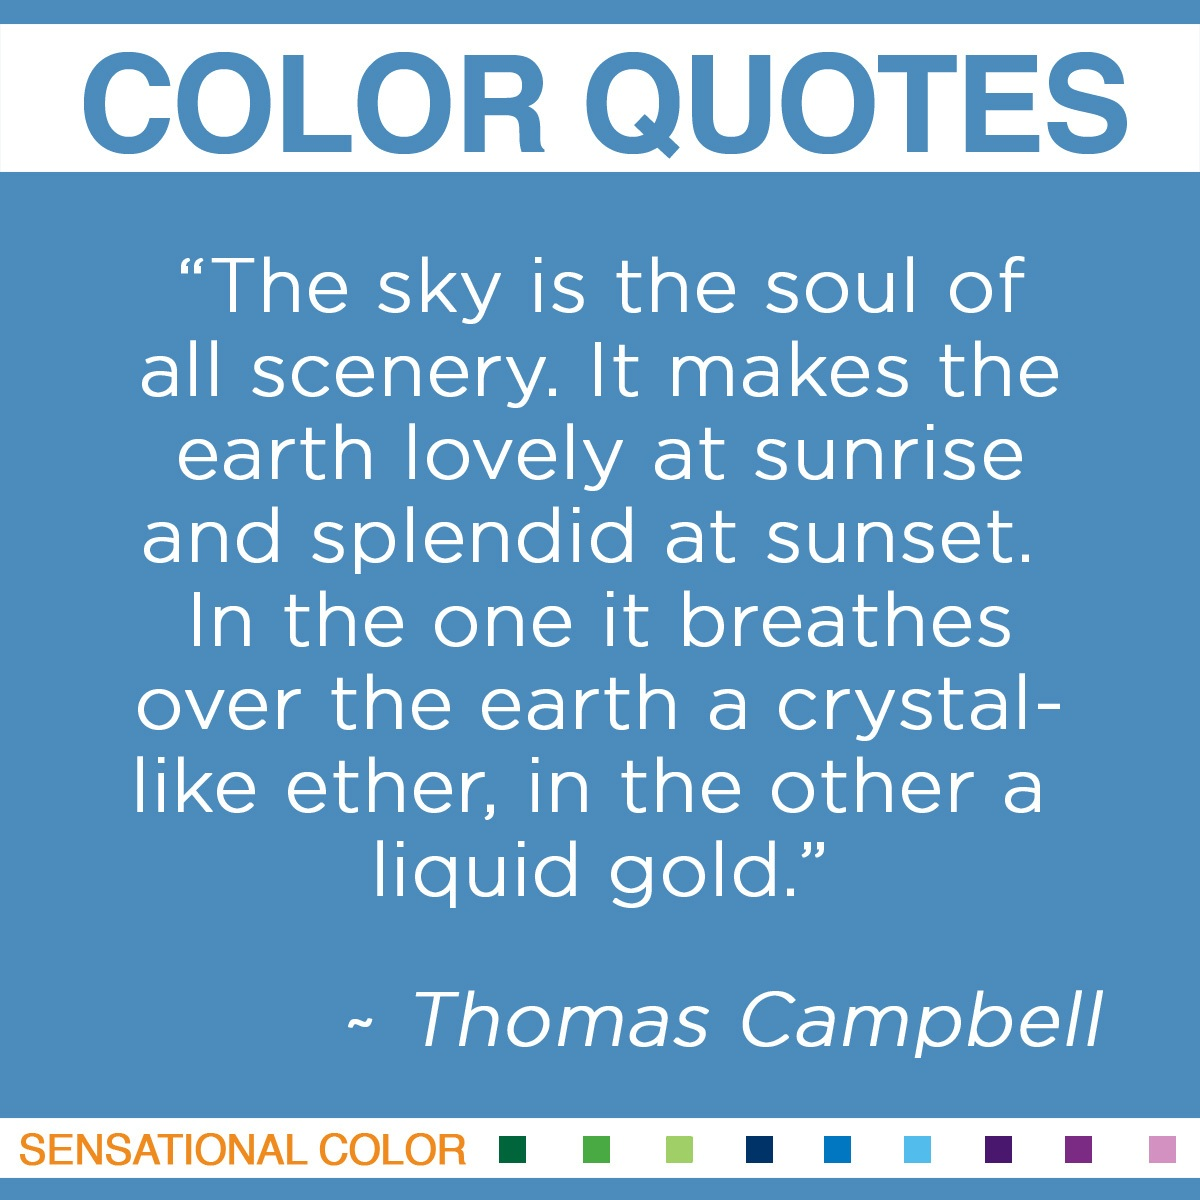 """The sky is the soul of all scenery. It makes the earth lovely at sunrise and splendid at sunset. In the one it breathes over the earth a crystal-like ether, in the other a liquid gold."" - Thomas Campbell"